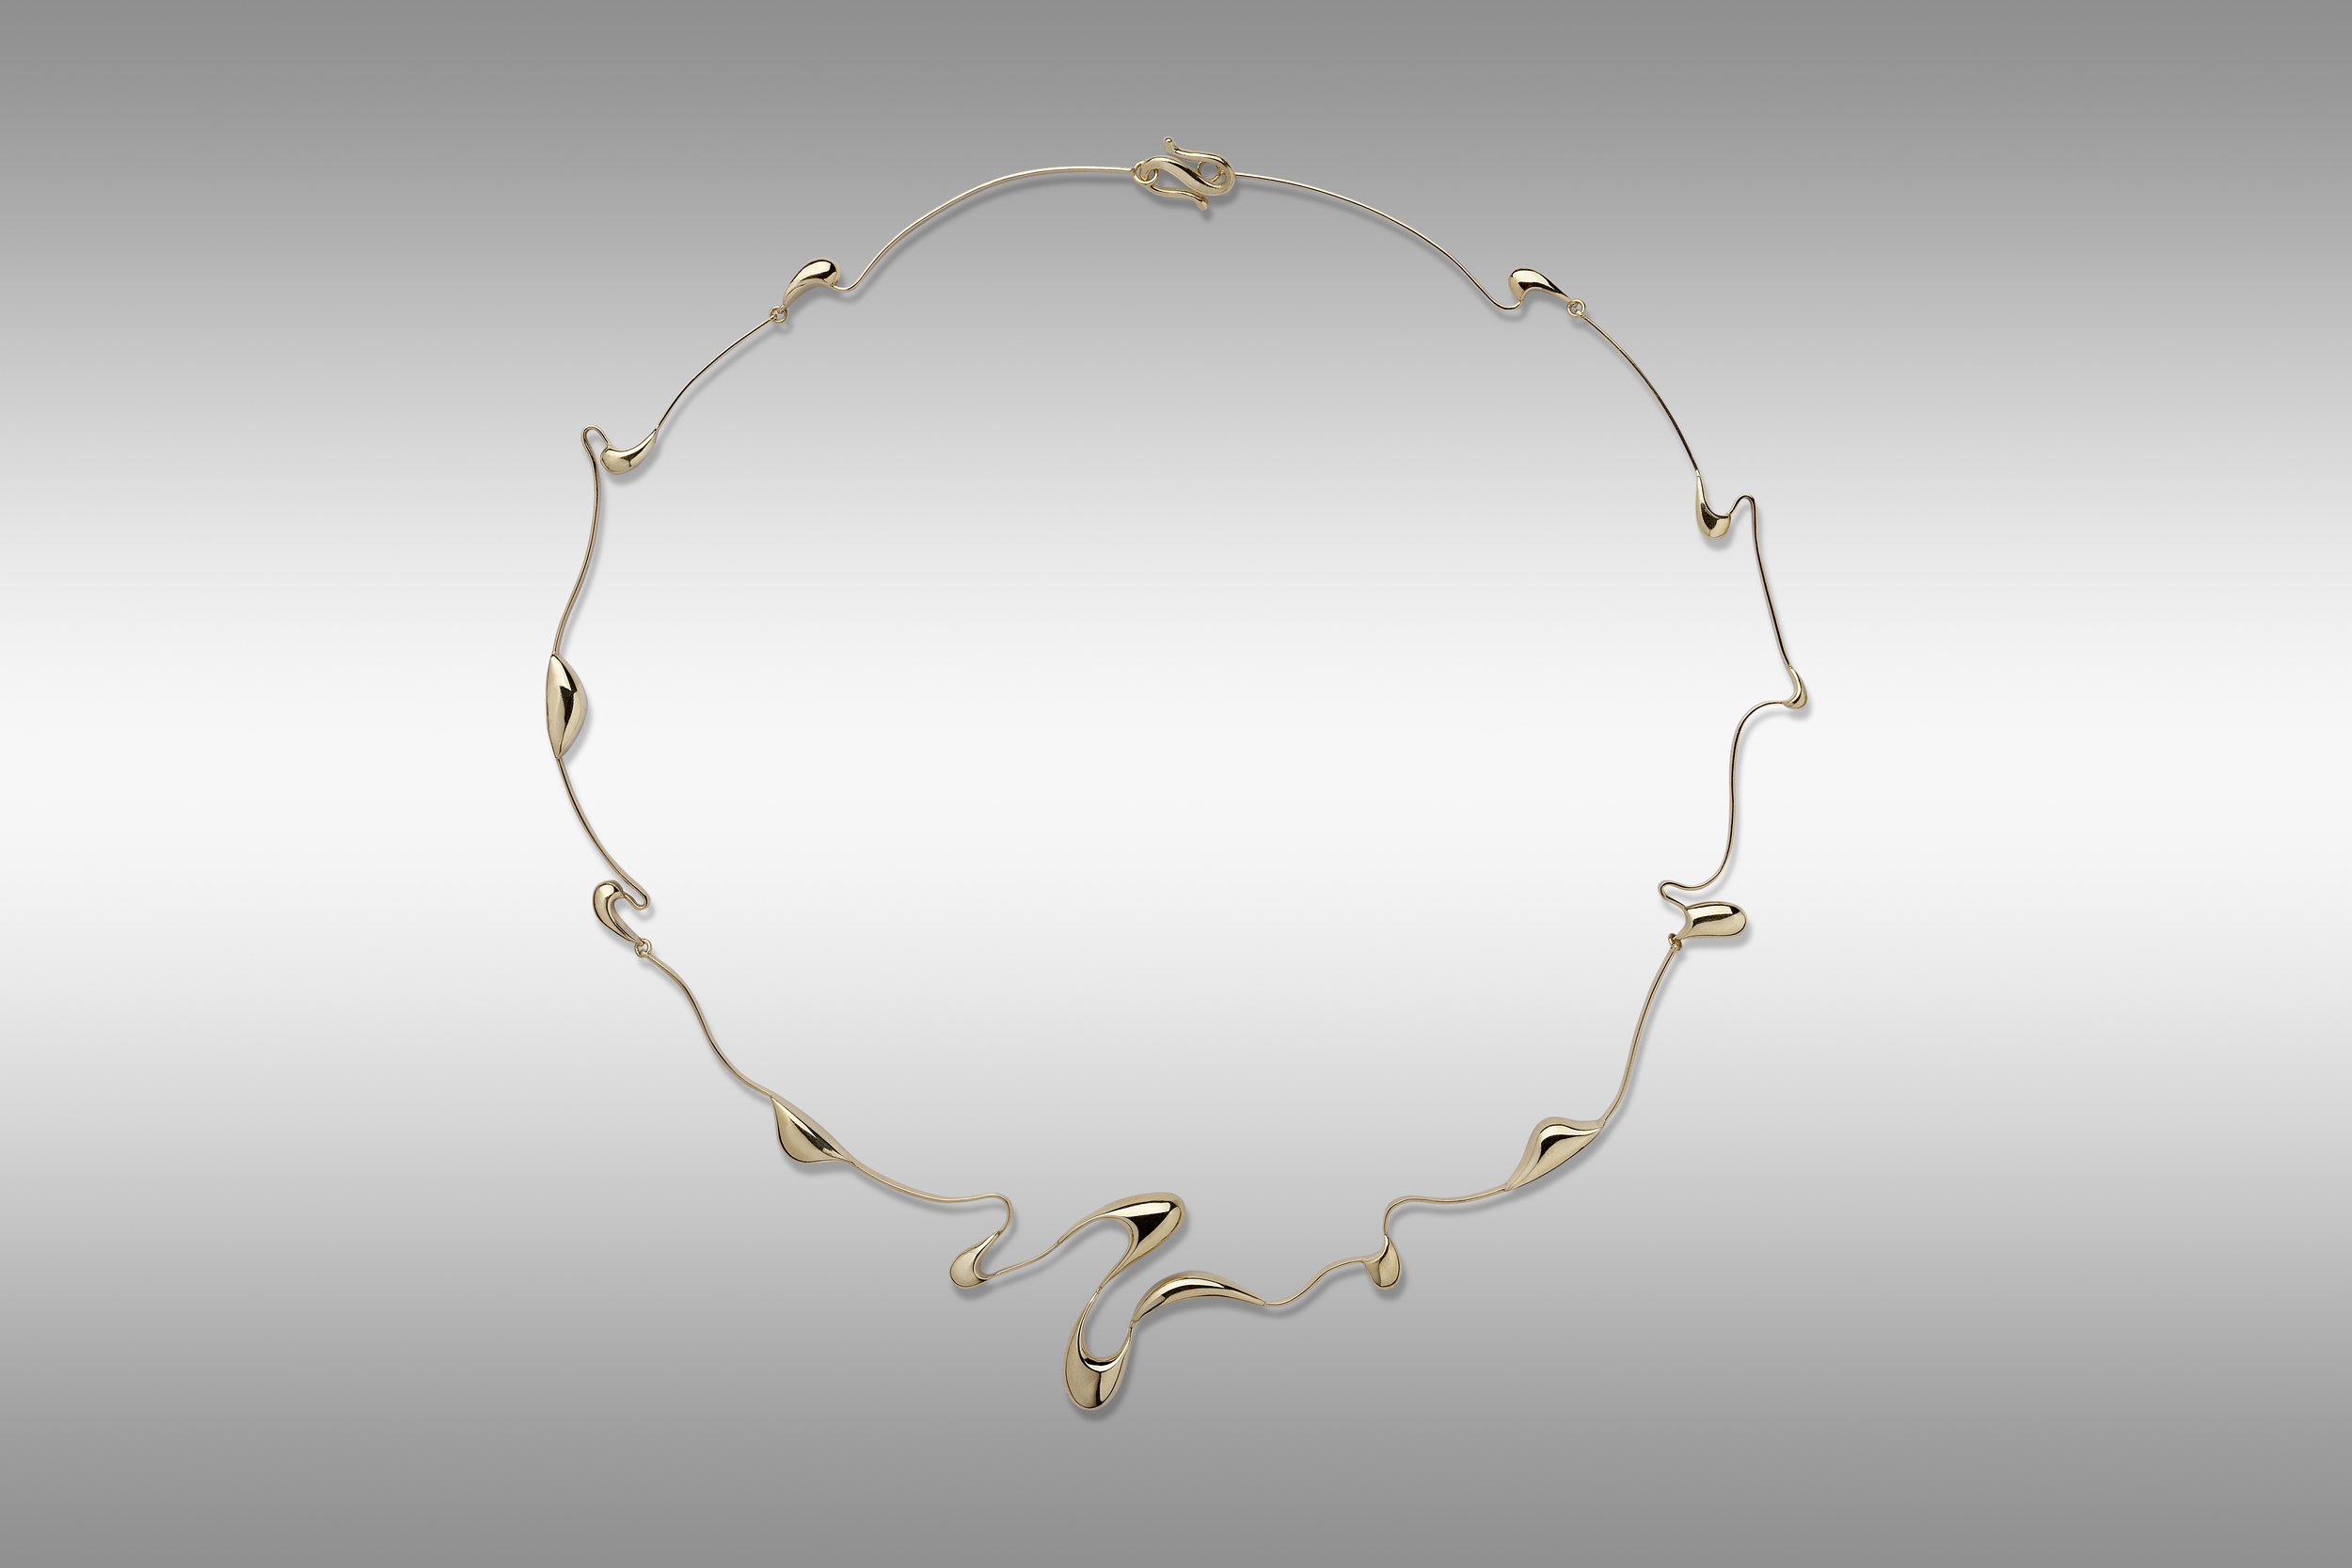 Fantasia yellow gold necklace 18ct.